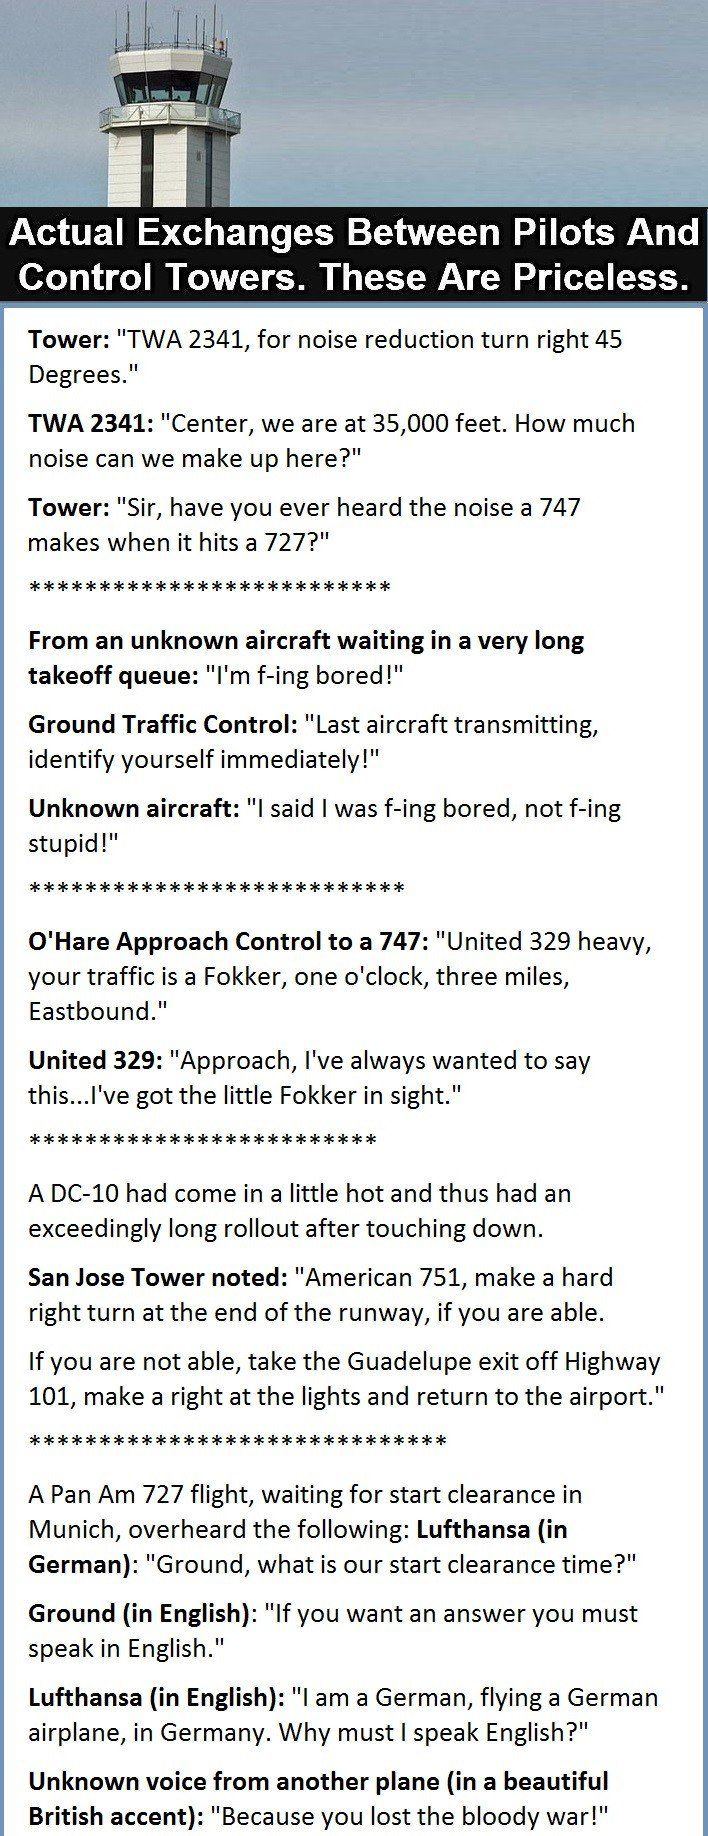 Radio exchanges between pilots and control towers